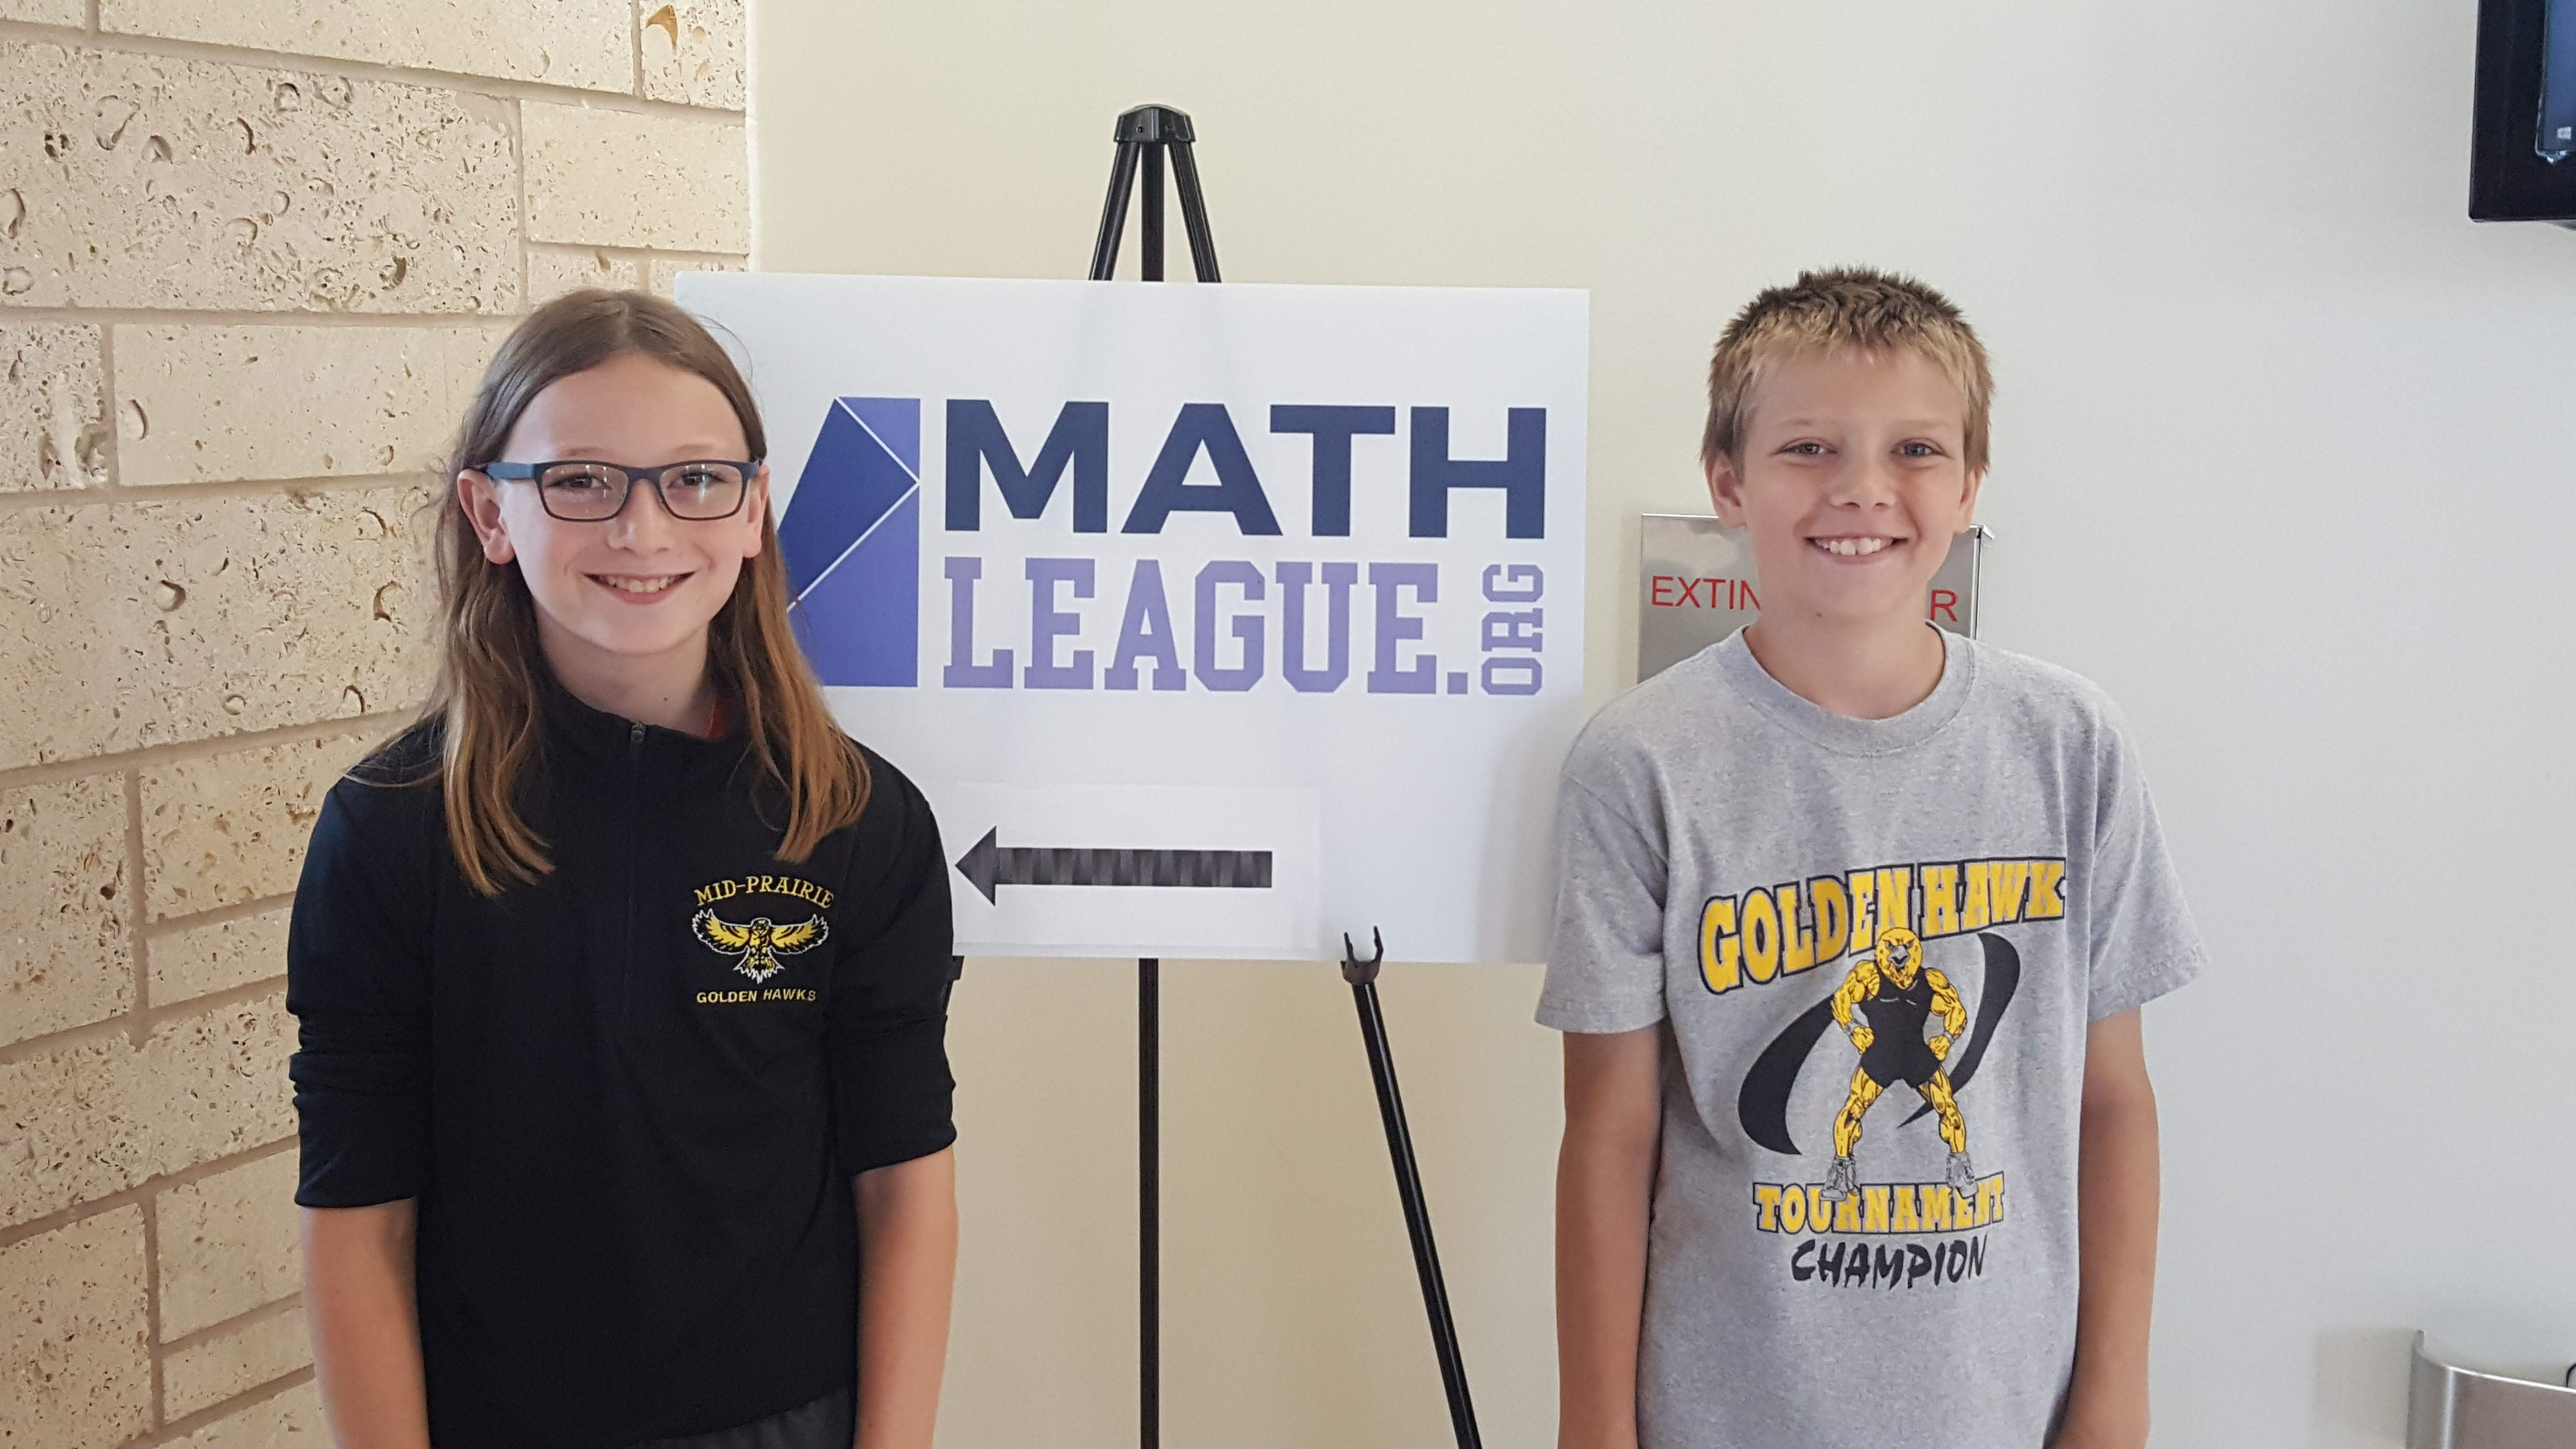 Caskey and Humble compete at Mathleague National Championship